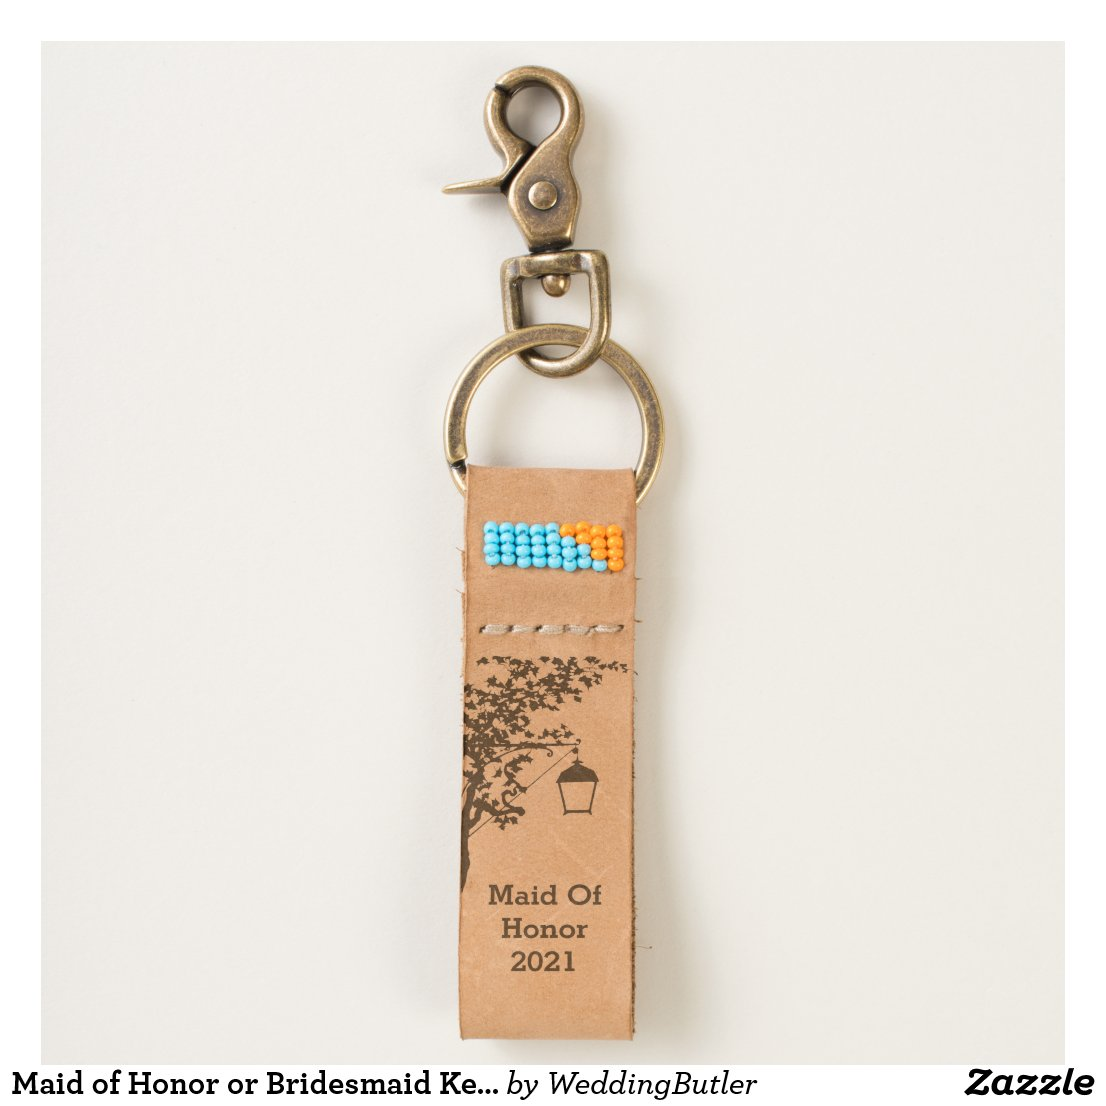 Maid of Honor or Bridesmaid Keychain